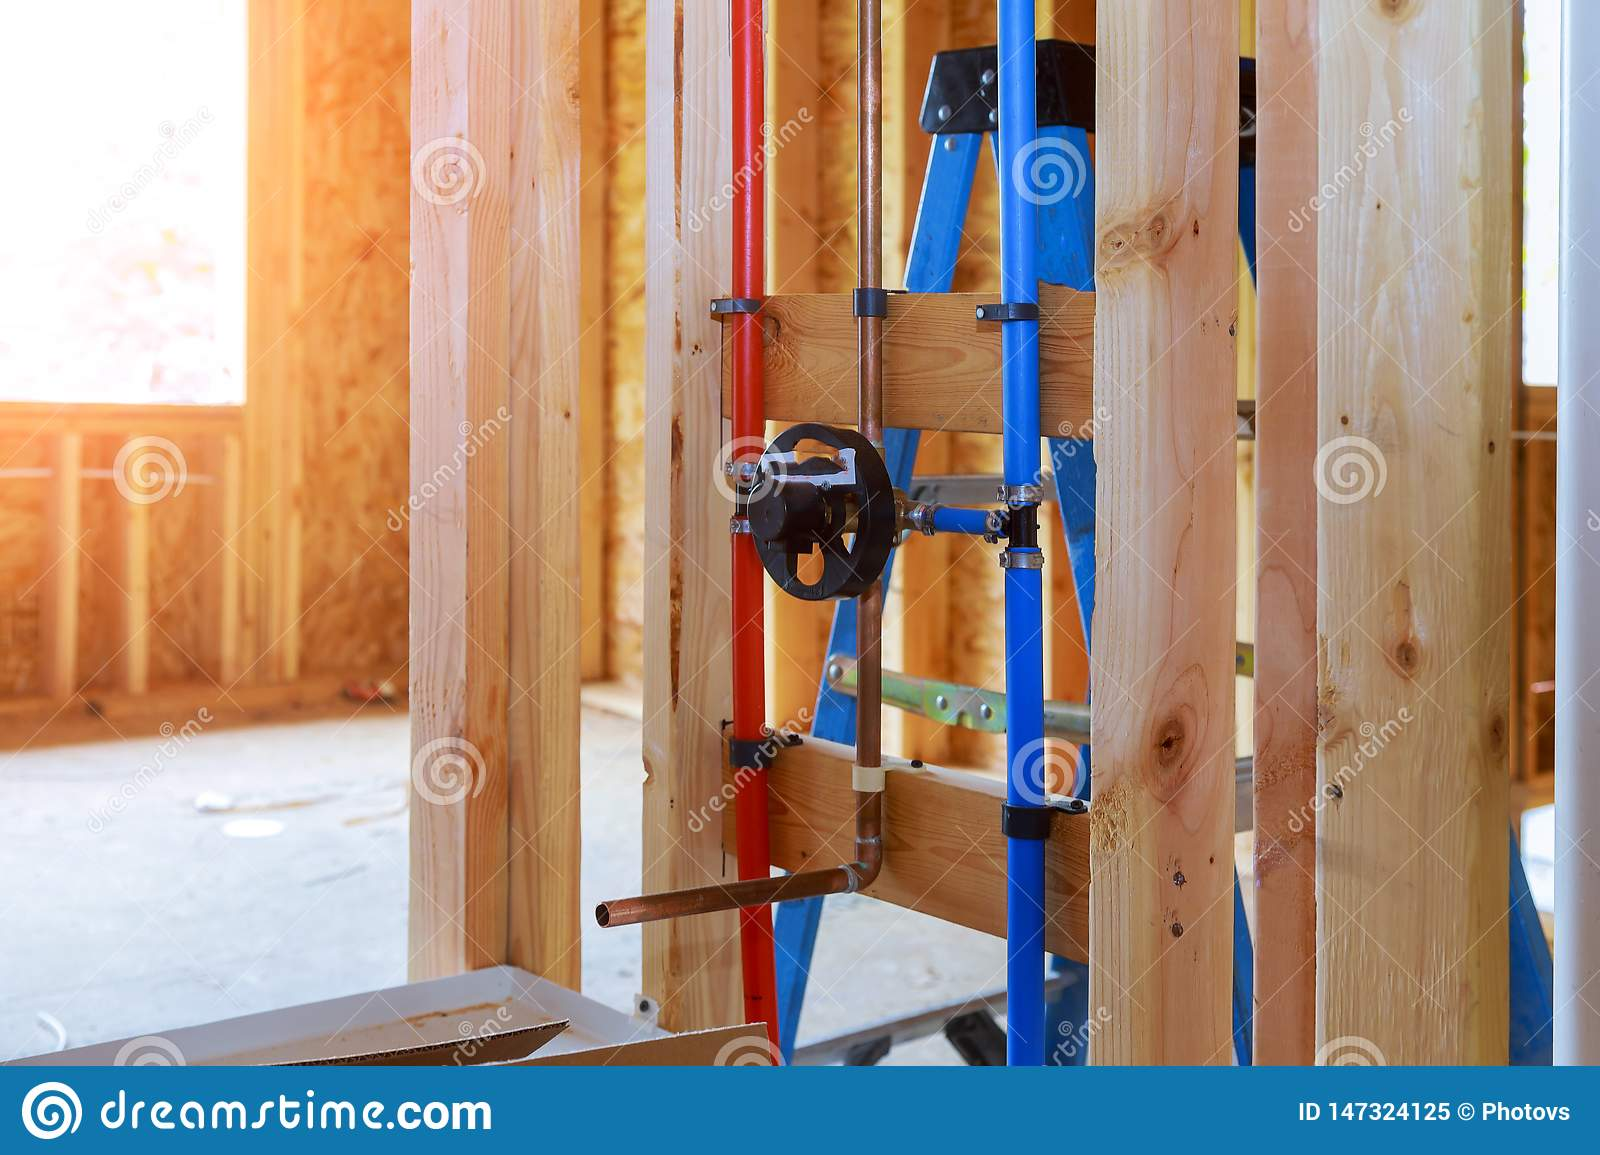 New home plumbing inside a house frame under construction interior